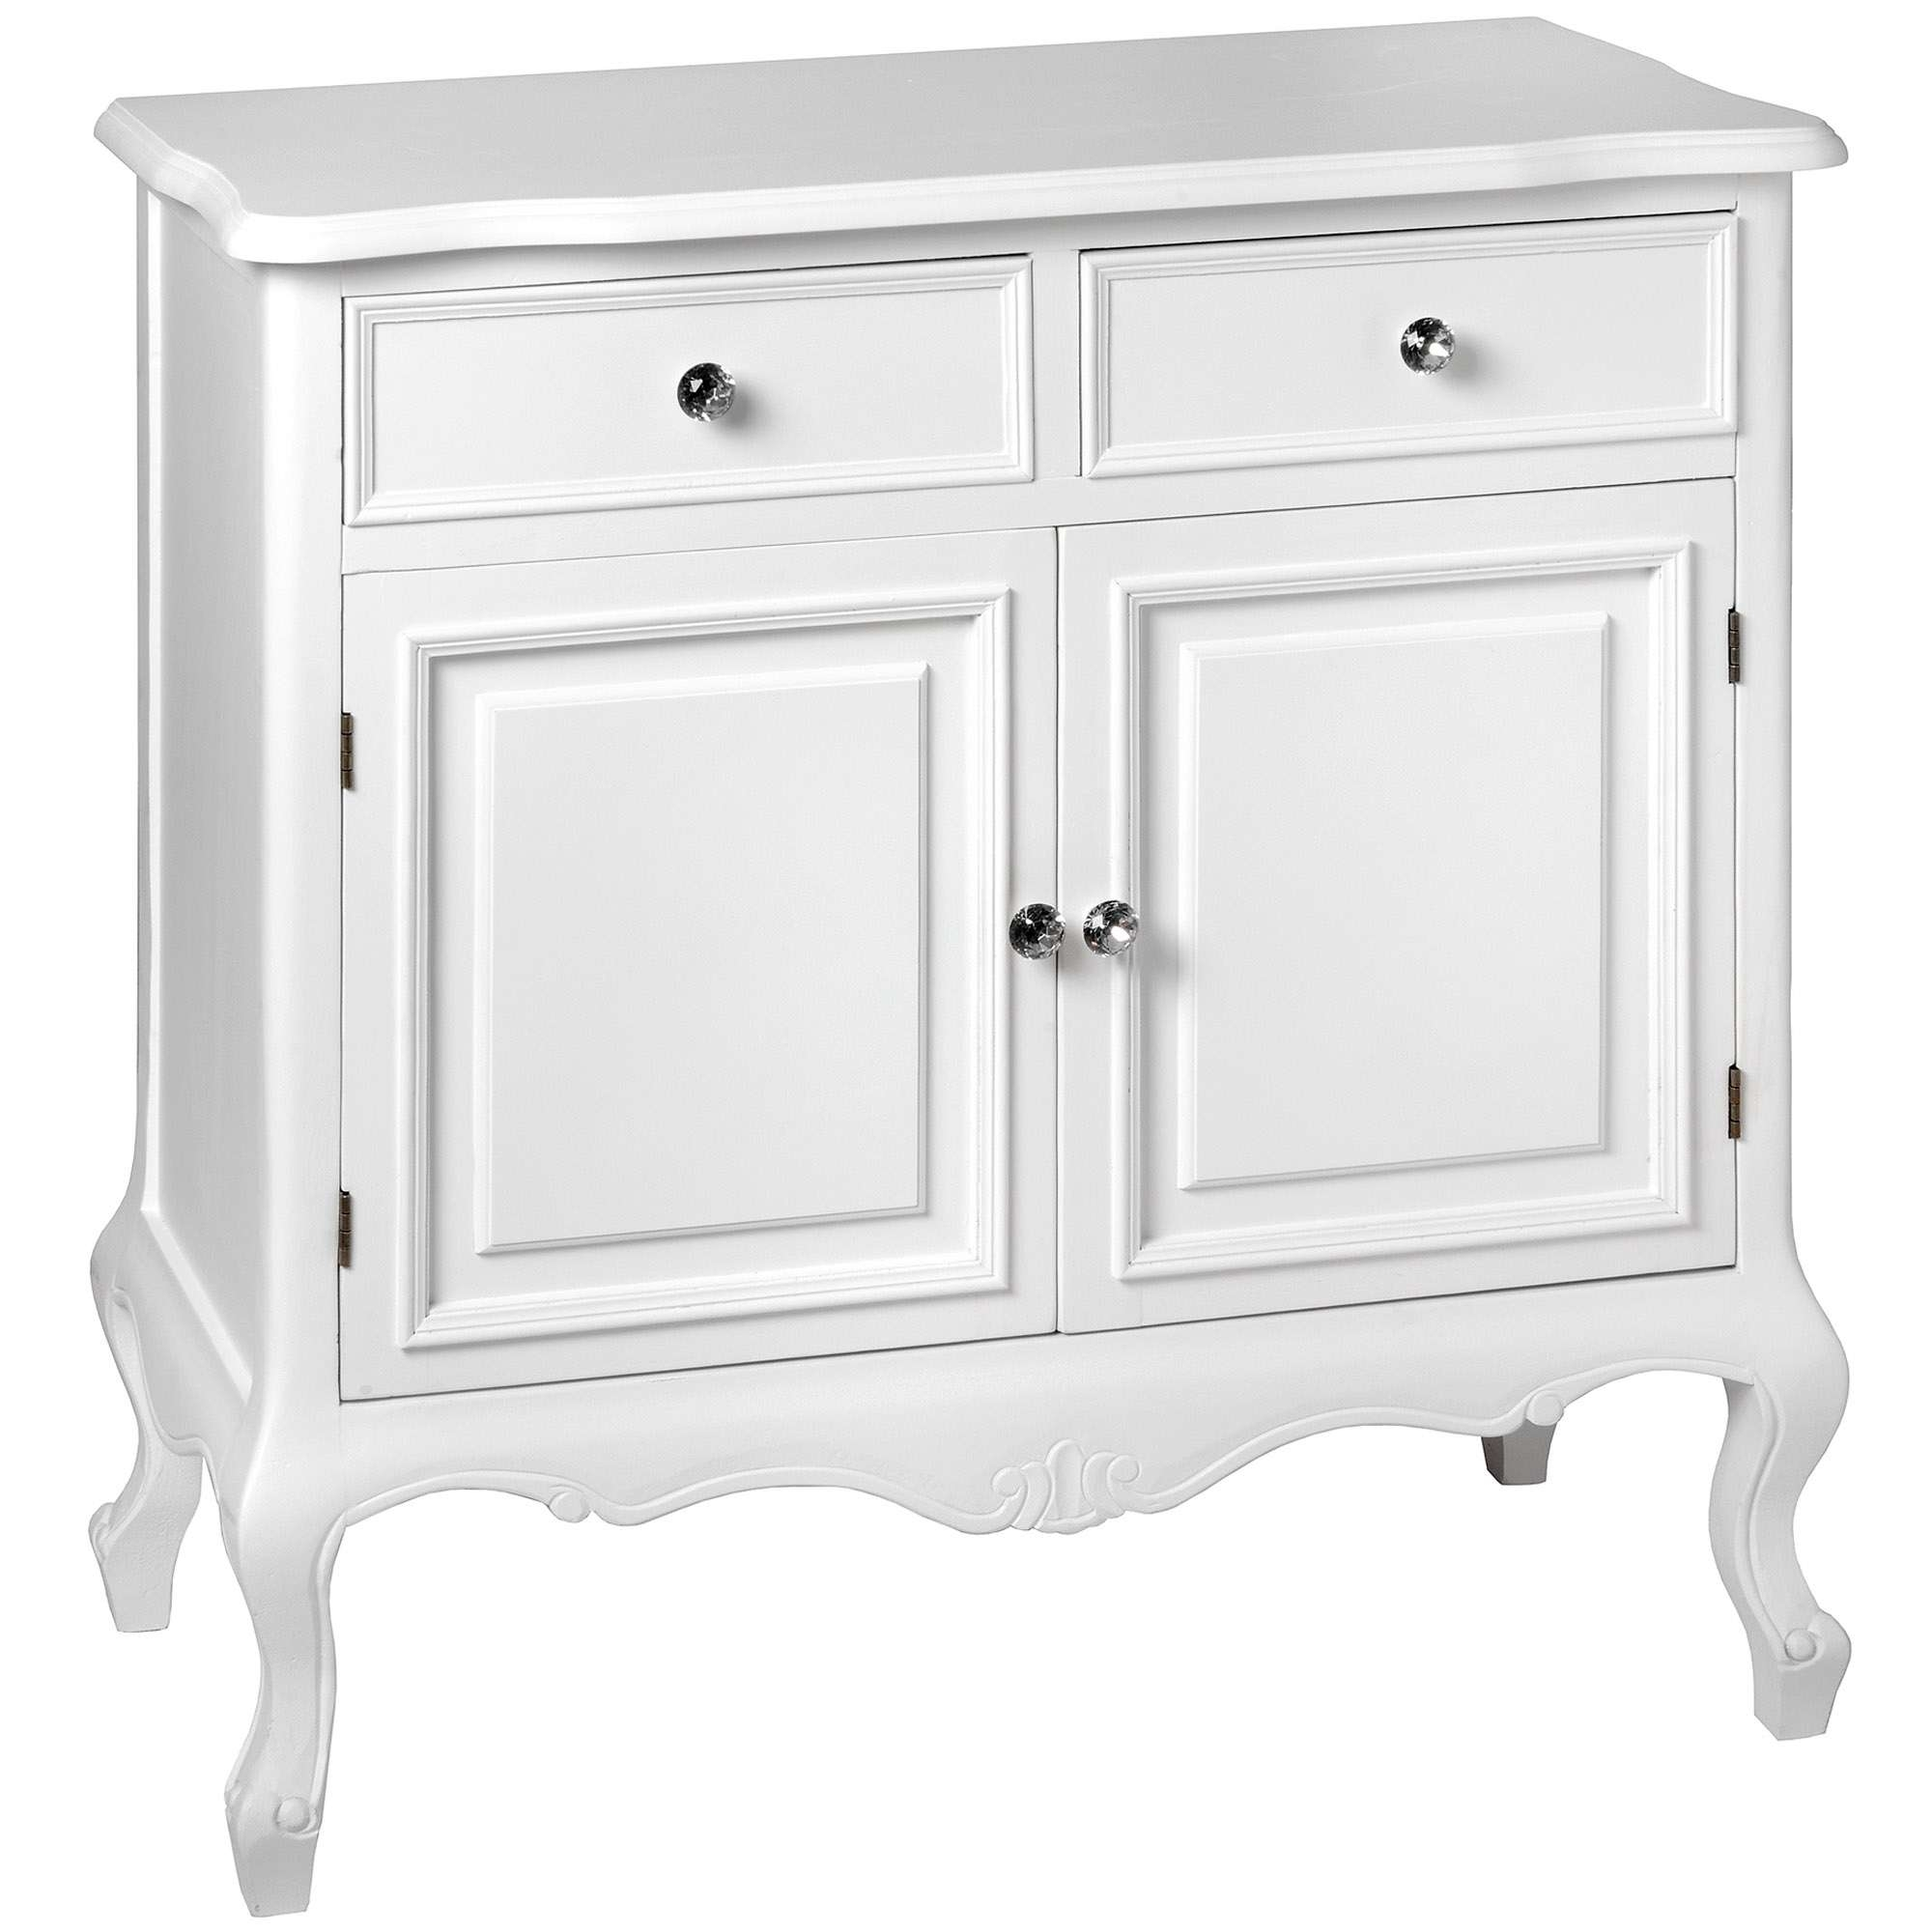 Fleur White 2 Drawer Shabby Chic Sideboard | Homesdirect365 For Shabby Chic Sideboards (View 3 of 20)